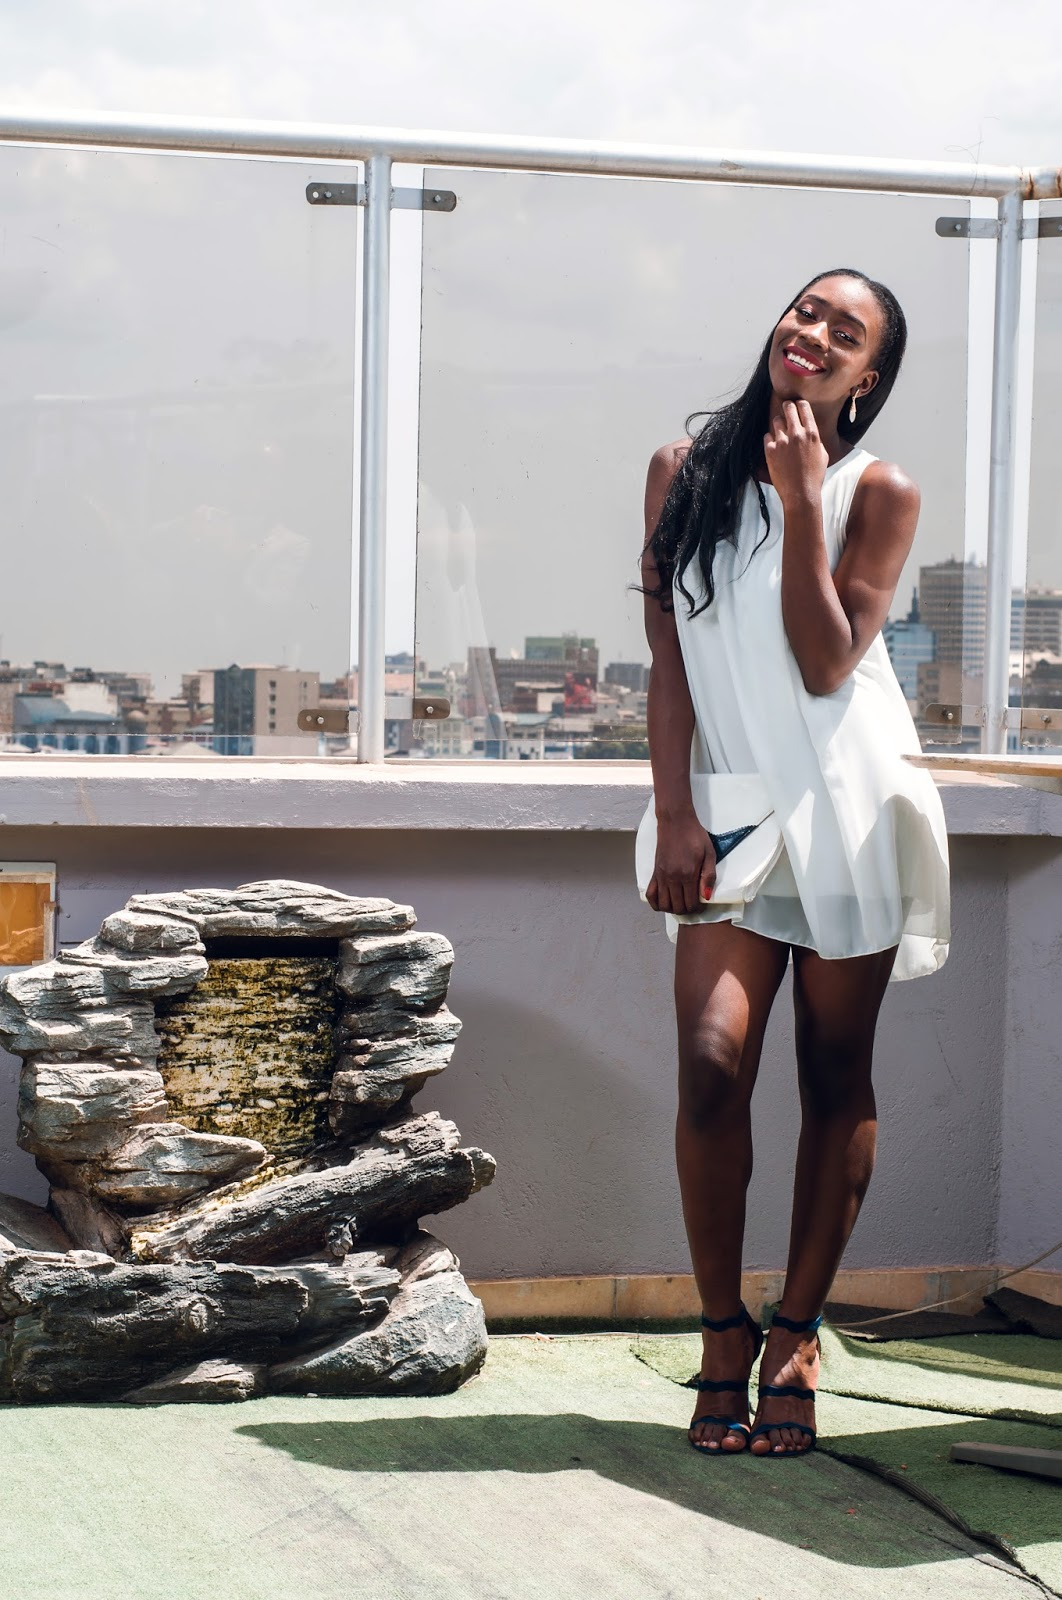 short dress, little white dress, ini dress, how to wear a mini dress, how to be confident in a mini dress, style with ezil, Ezil, Kenyan fashion blogger, African fashion blogger, Fashion blogger, Fashion